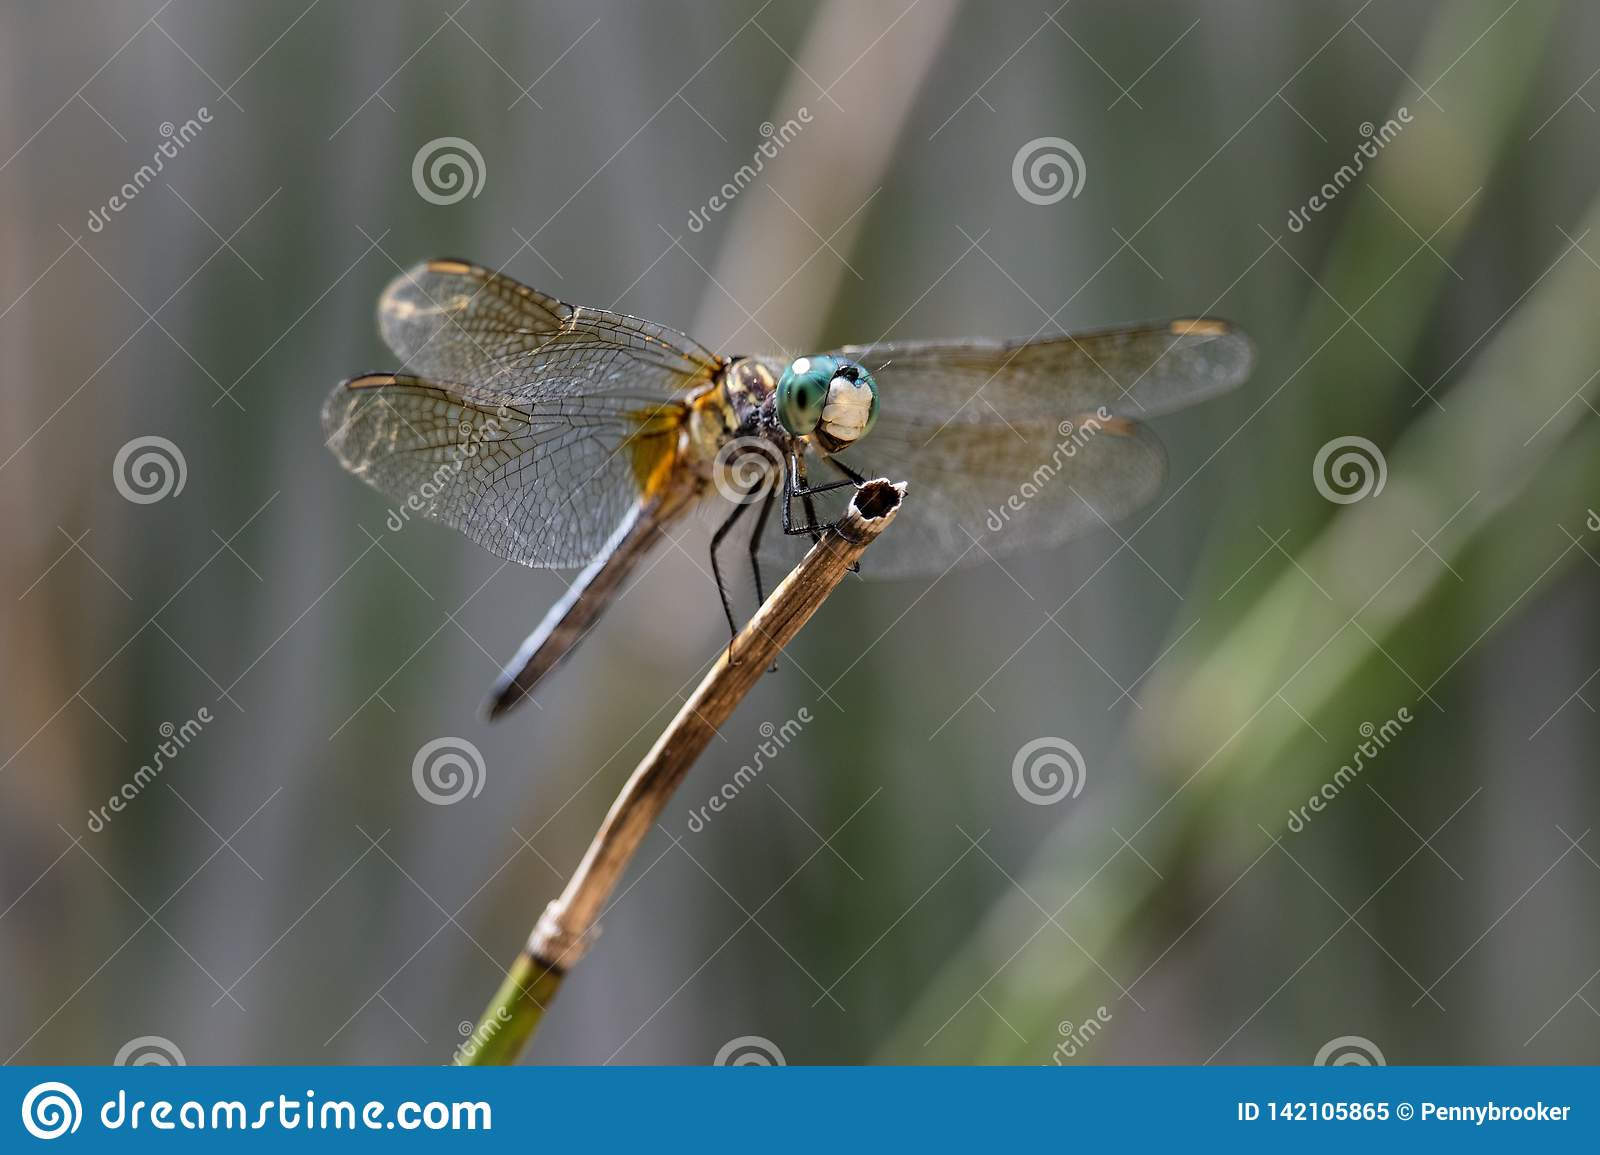 Smiling Blue Dasher Dragonfly sitting on reed